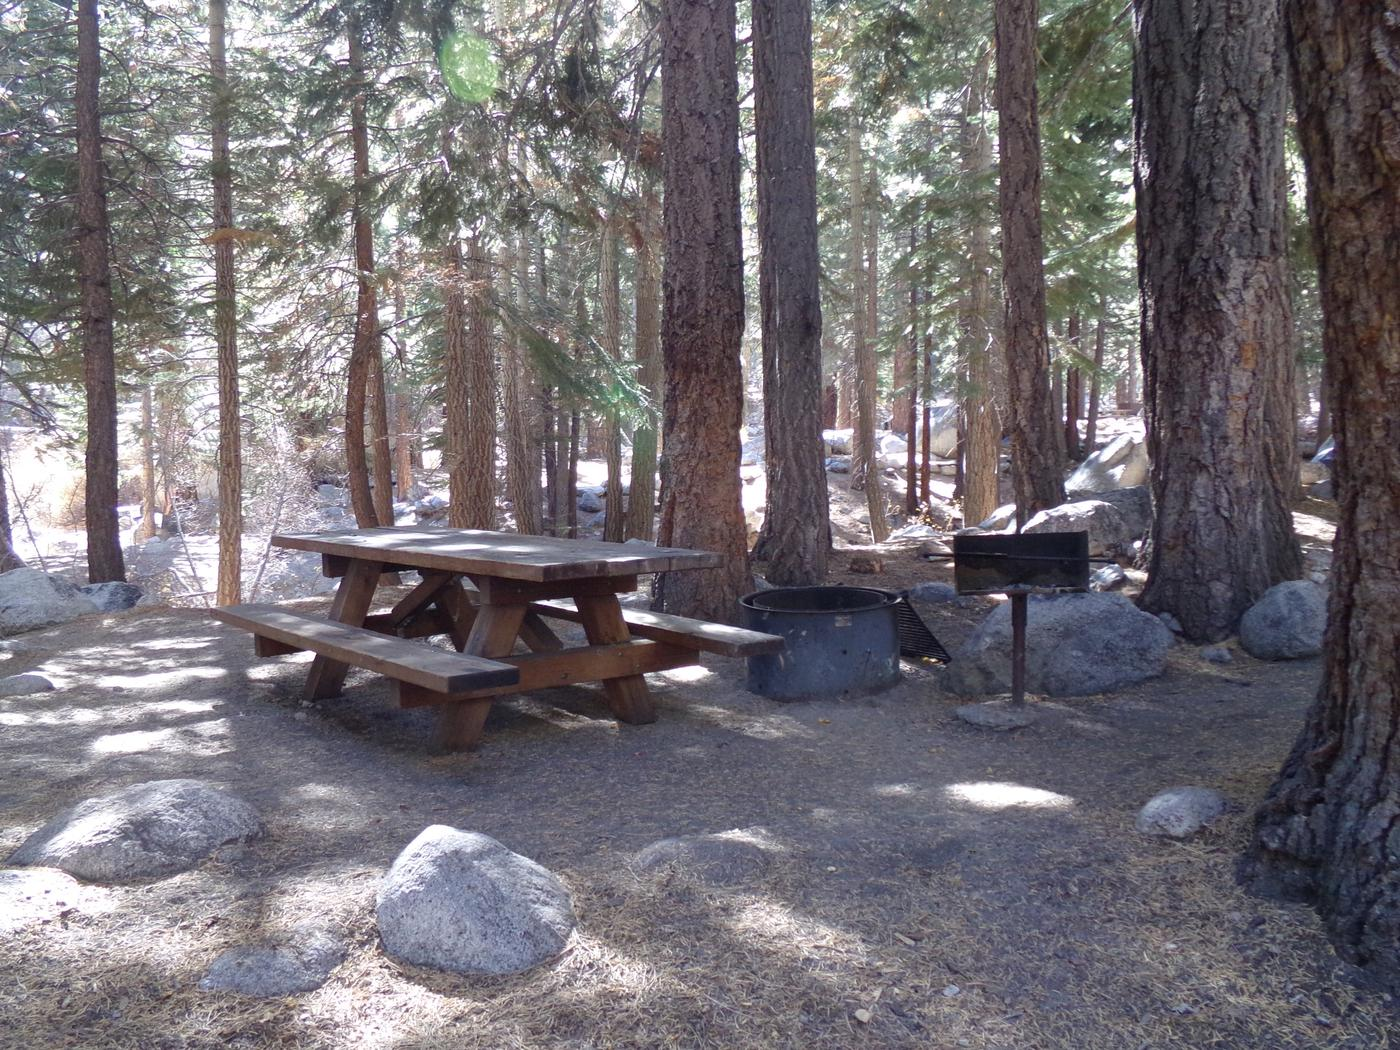 Mt. Whitney Portal Campground site #44 featuring the mountain top setting picnic area and camping space.